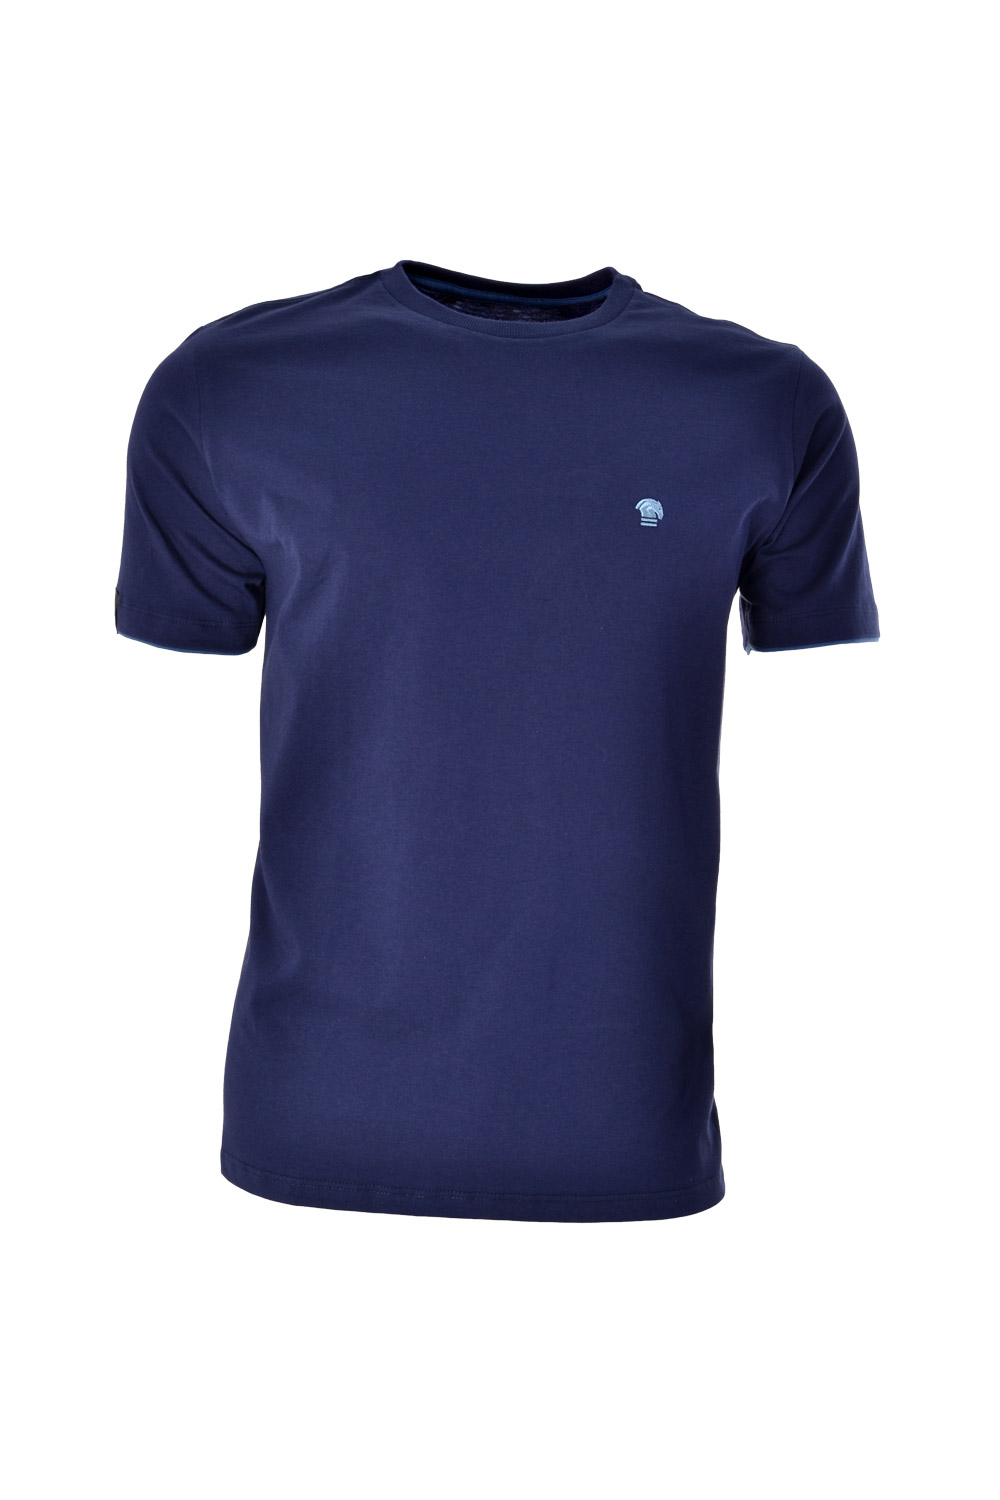 CAMISETA MC BLUES SUPER SLIM ALGODAO GOLA C LISO AZUL MARINHO